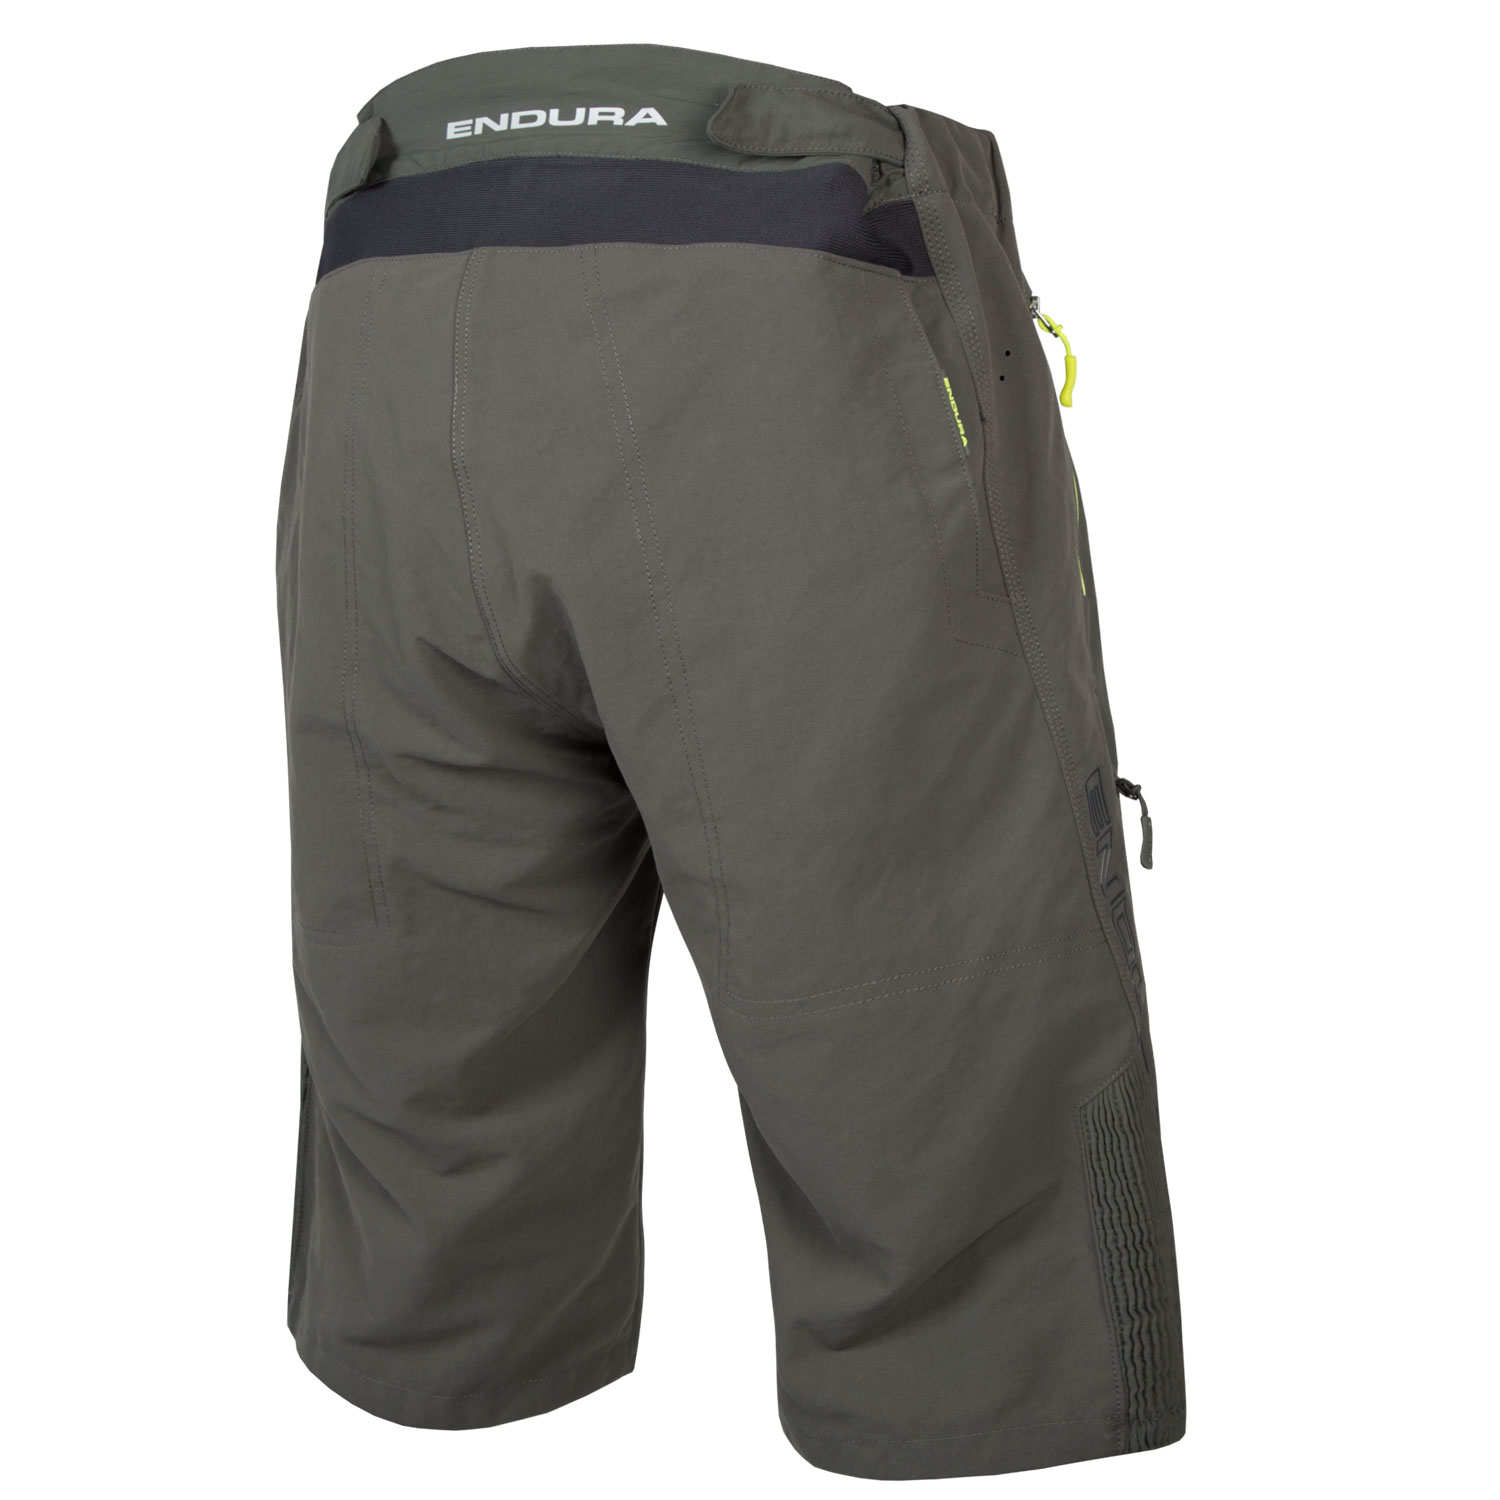 SingleTrack Short with Liner Khaki